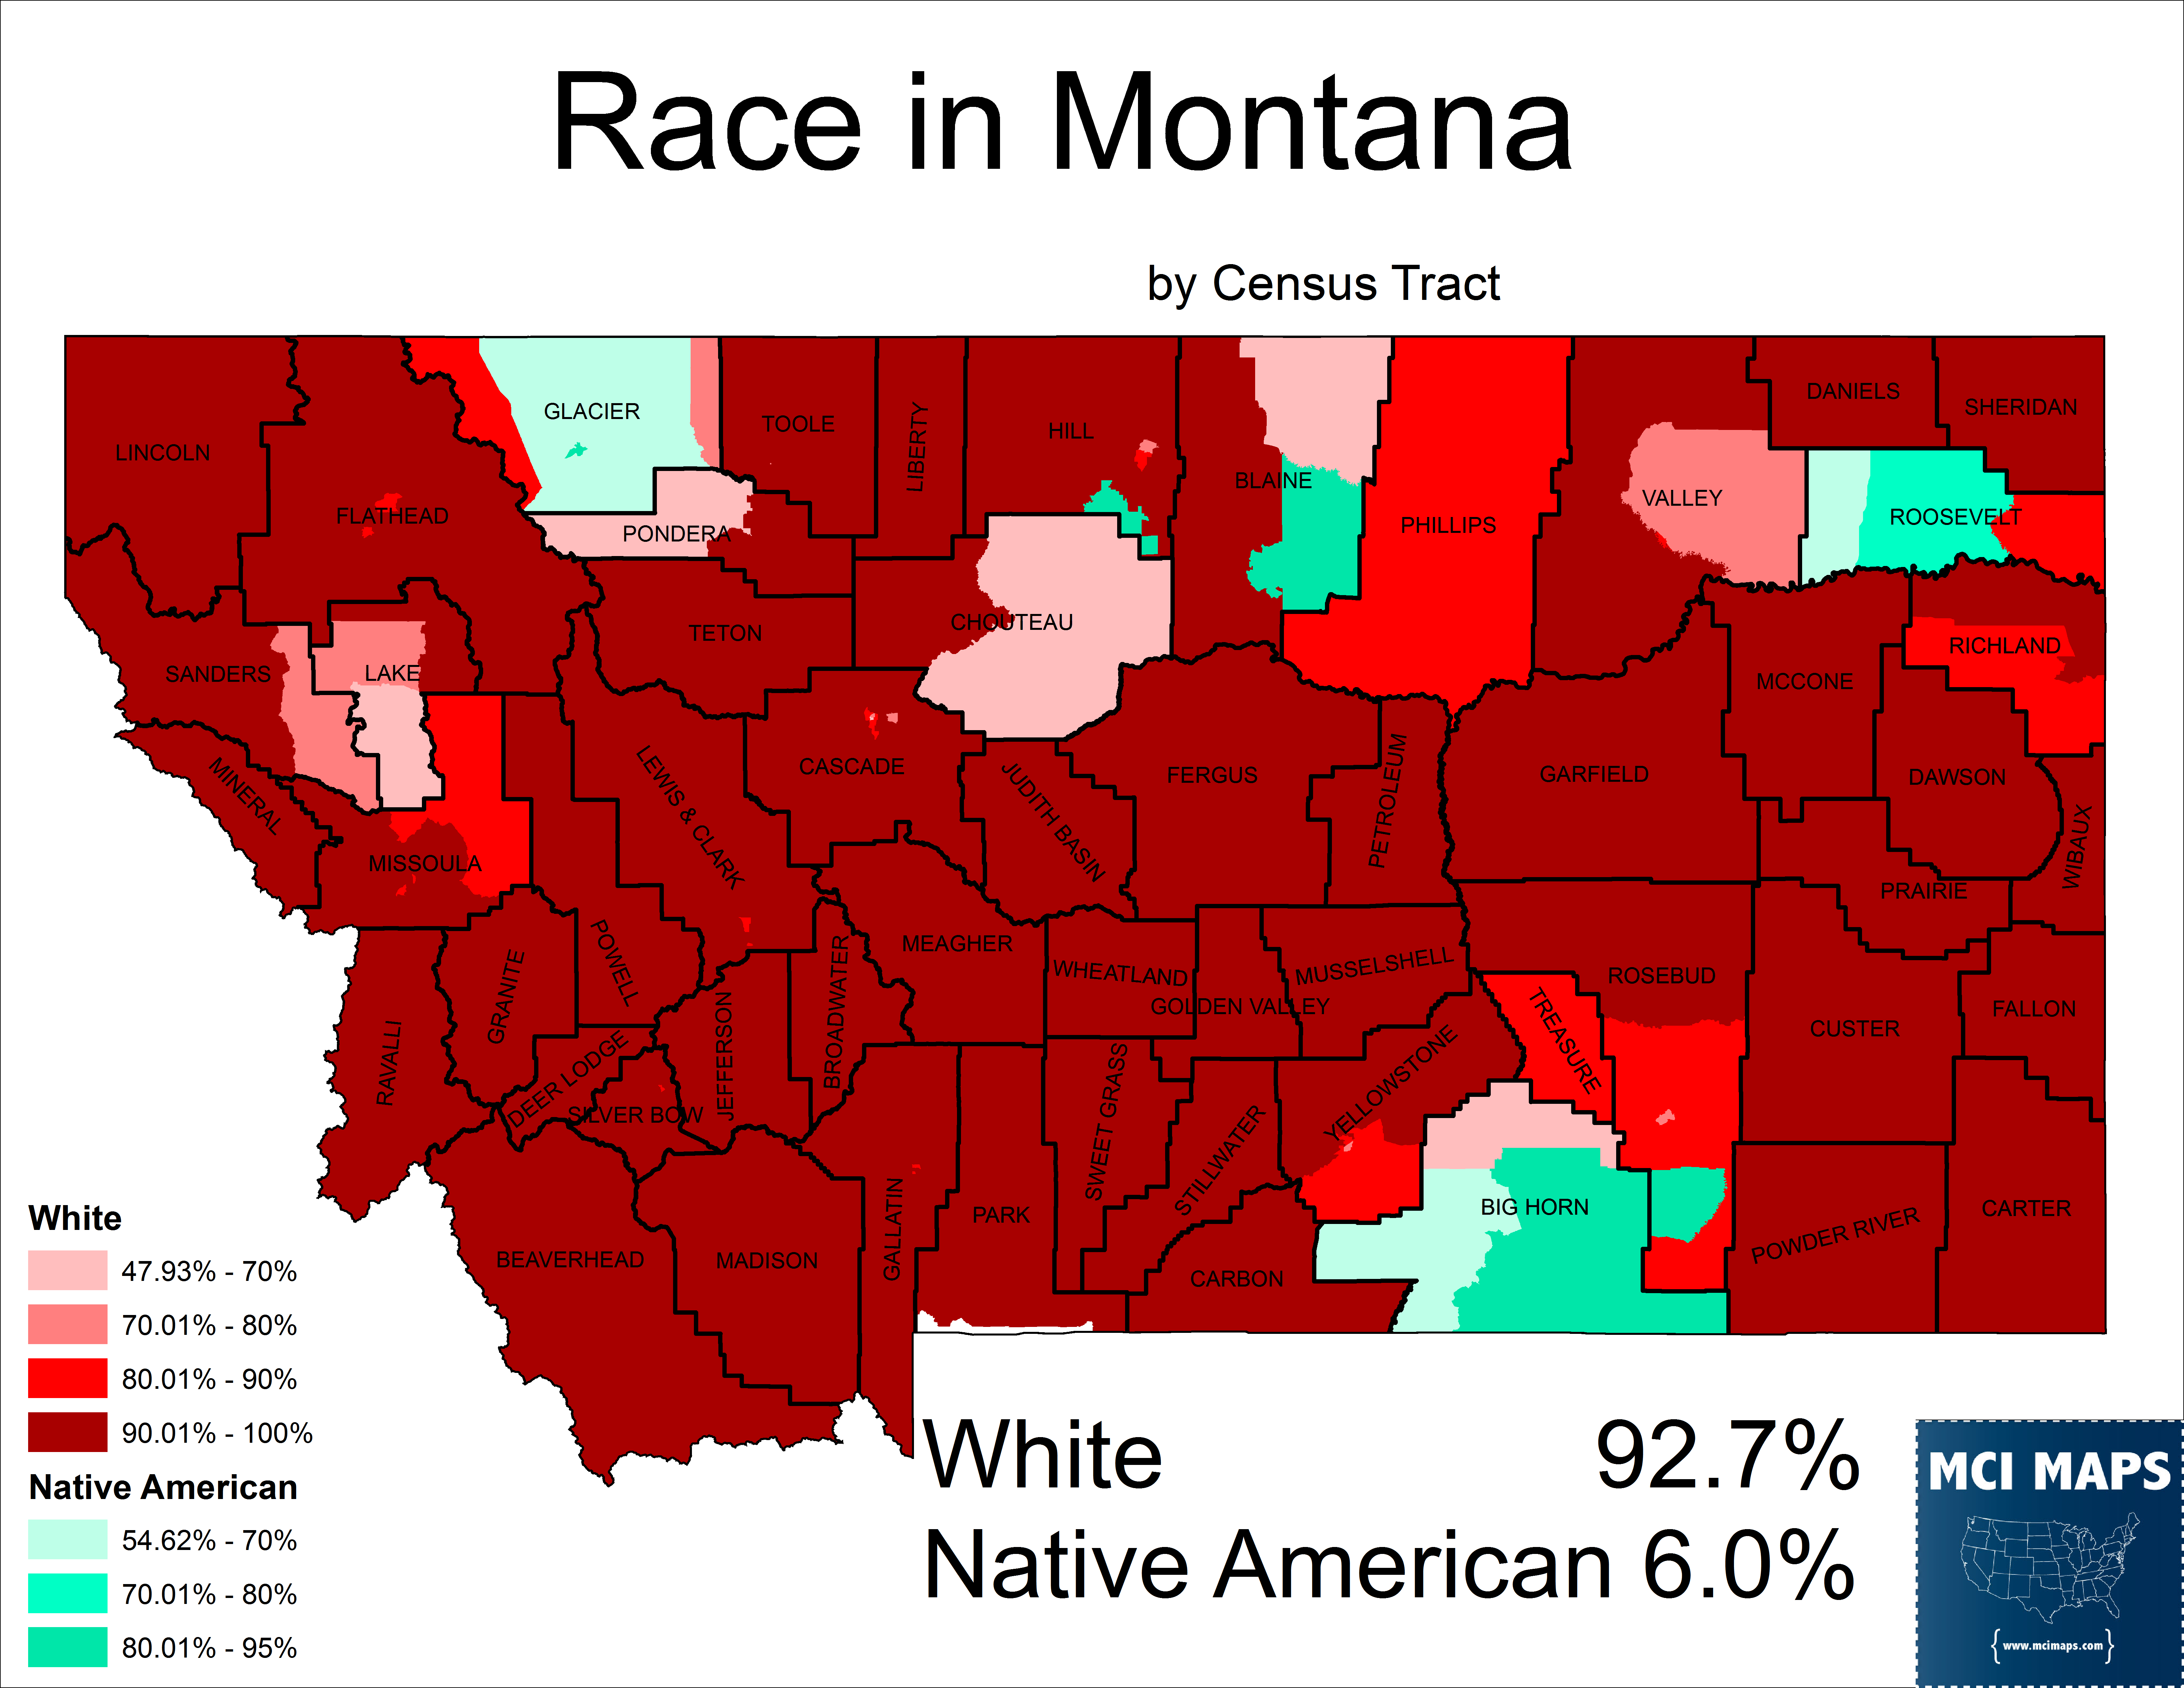 Montana missoula county clinton - Montana Was Solid For Trump In 2016 Giving Him An Over 20 Margin Clinton S Wins Where Clustered In The West And Along The Indian Reservations